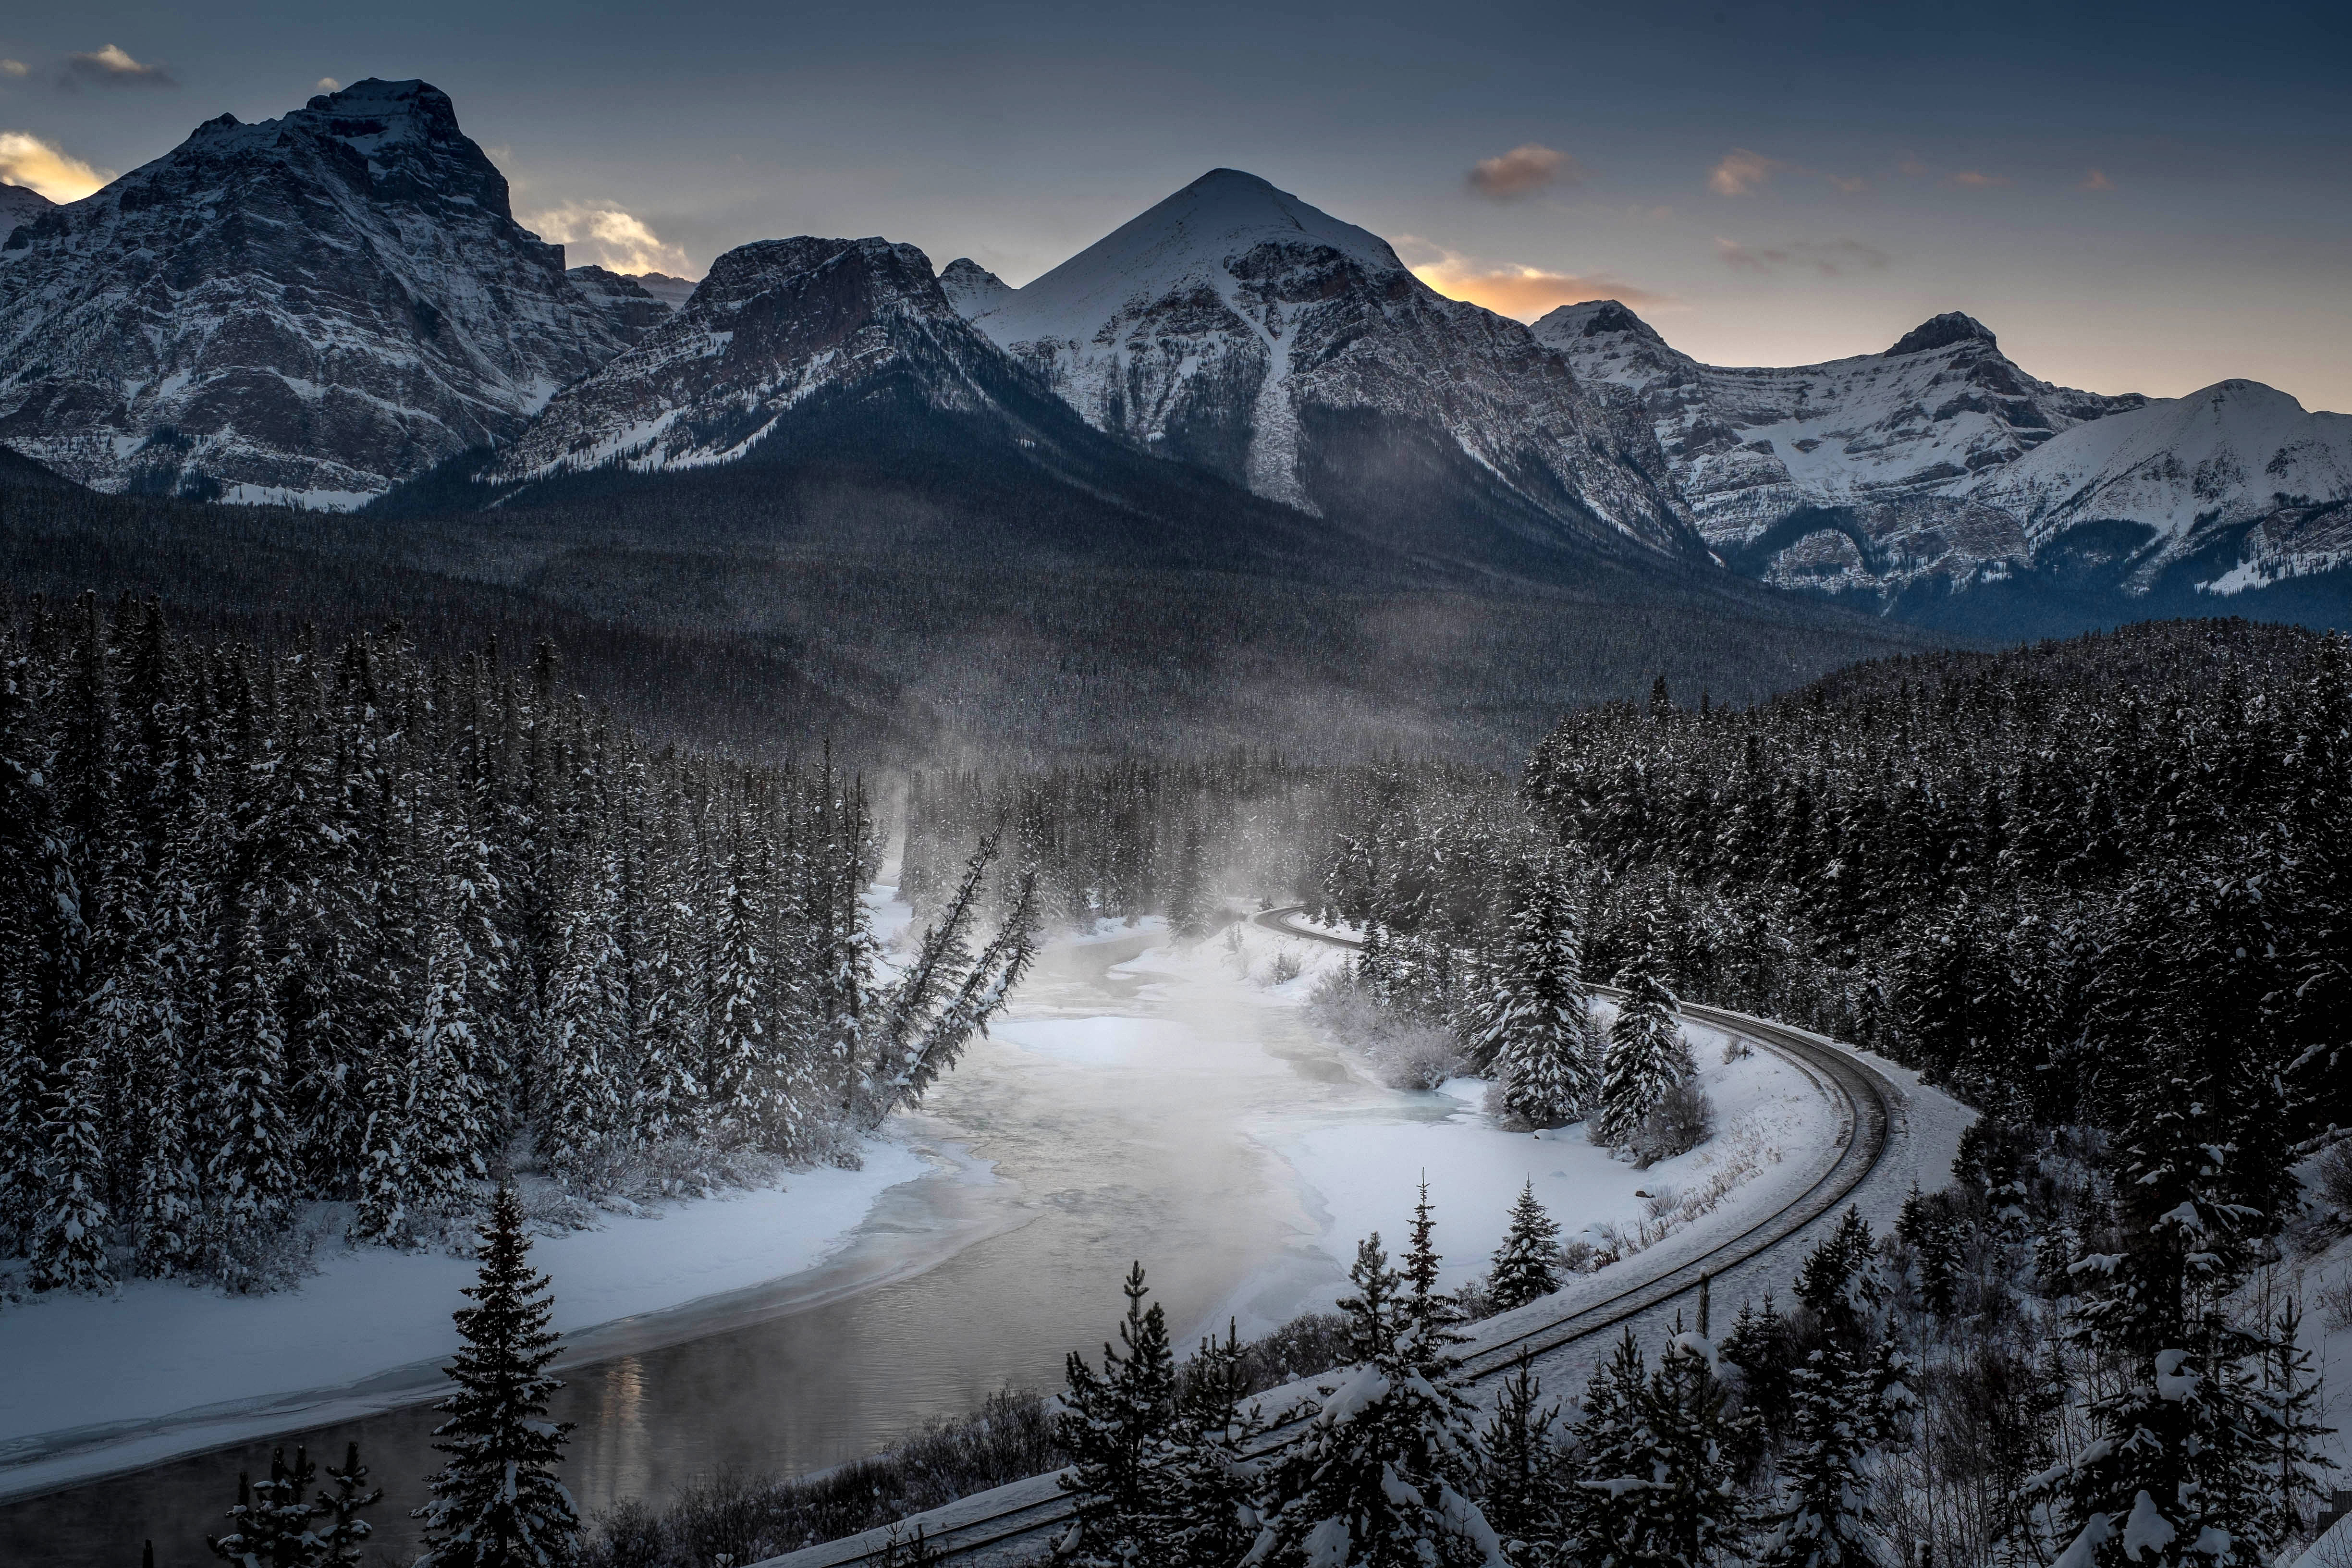 The famous Morant's Curve, offering a beautiful view of the frozen Bow River and the Canadian Pacific Railway at Banff National Park near Lake Louise, Canada, on Dec. 6, 2013